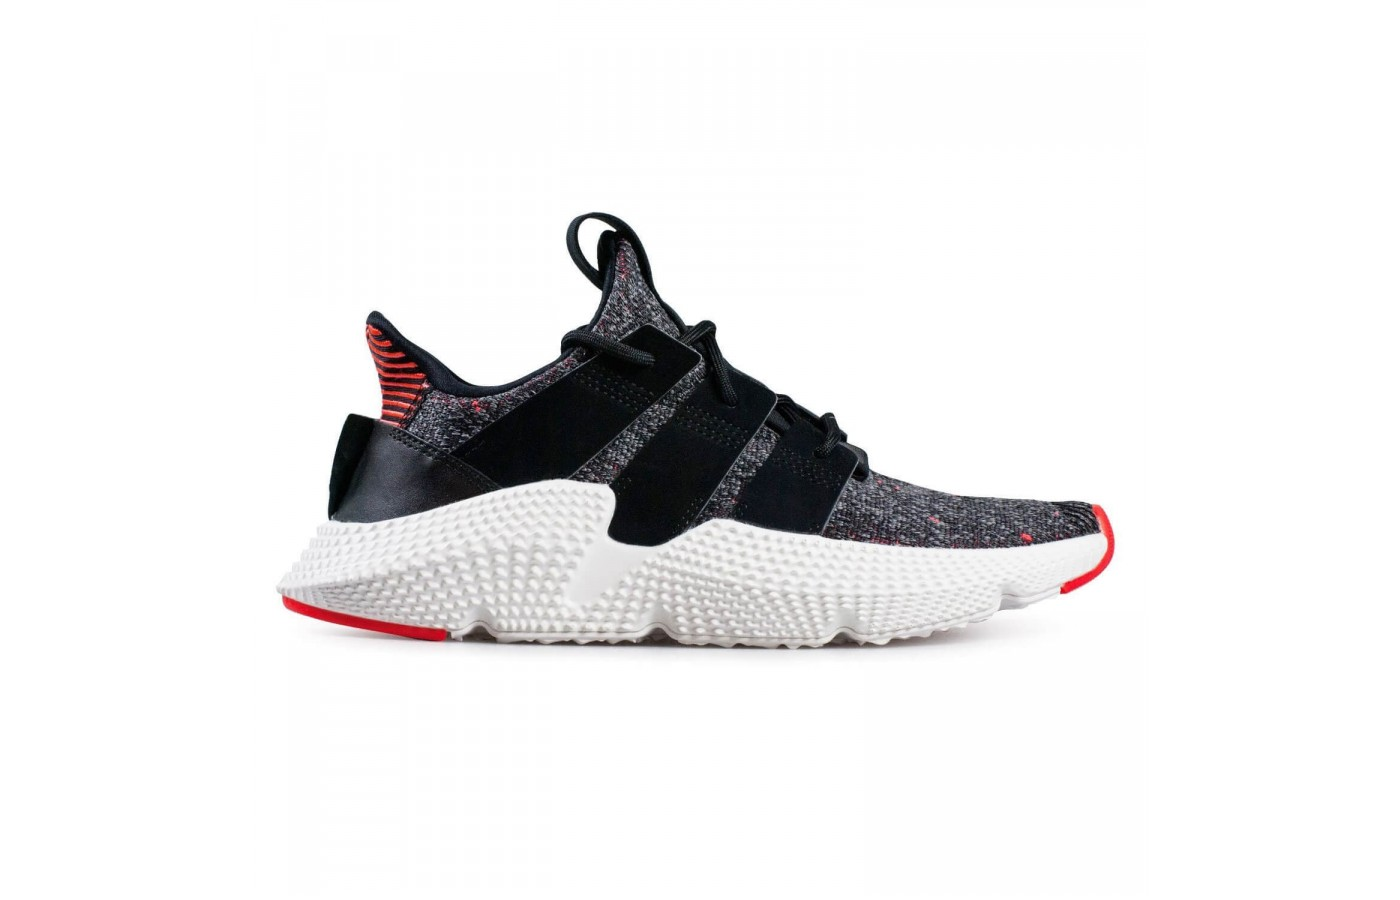 a60fd7915 ... The Adidas Prophere has a flexible knit upper ...